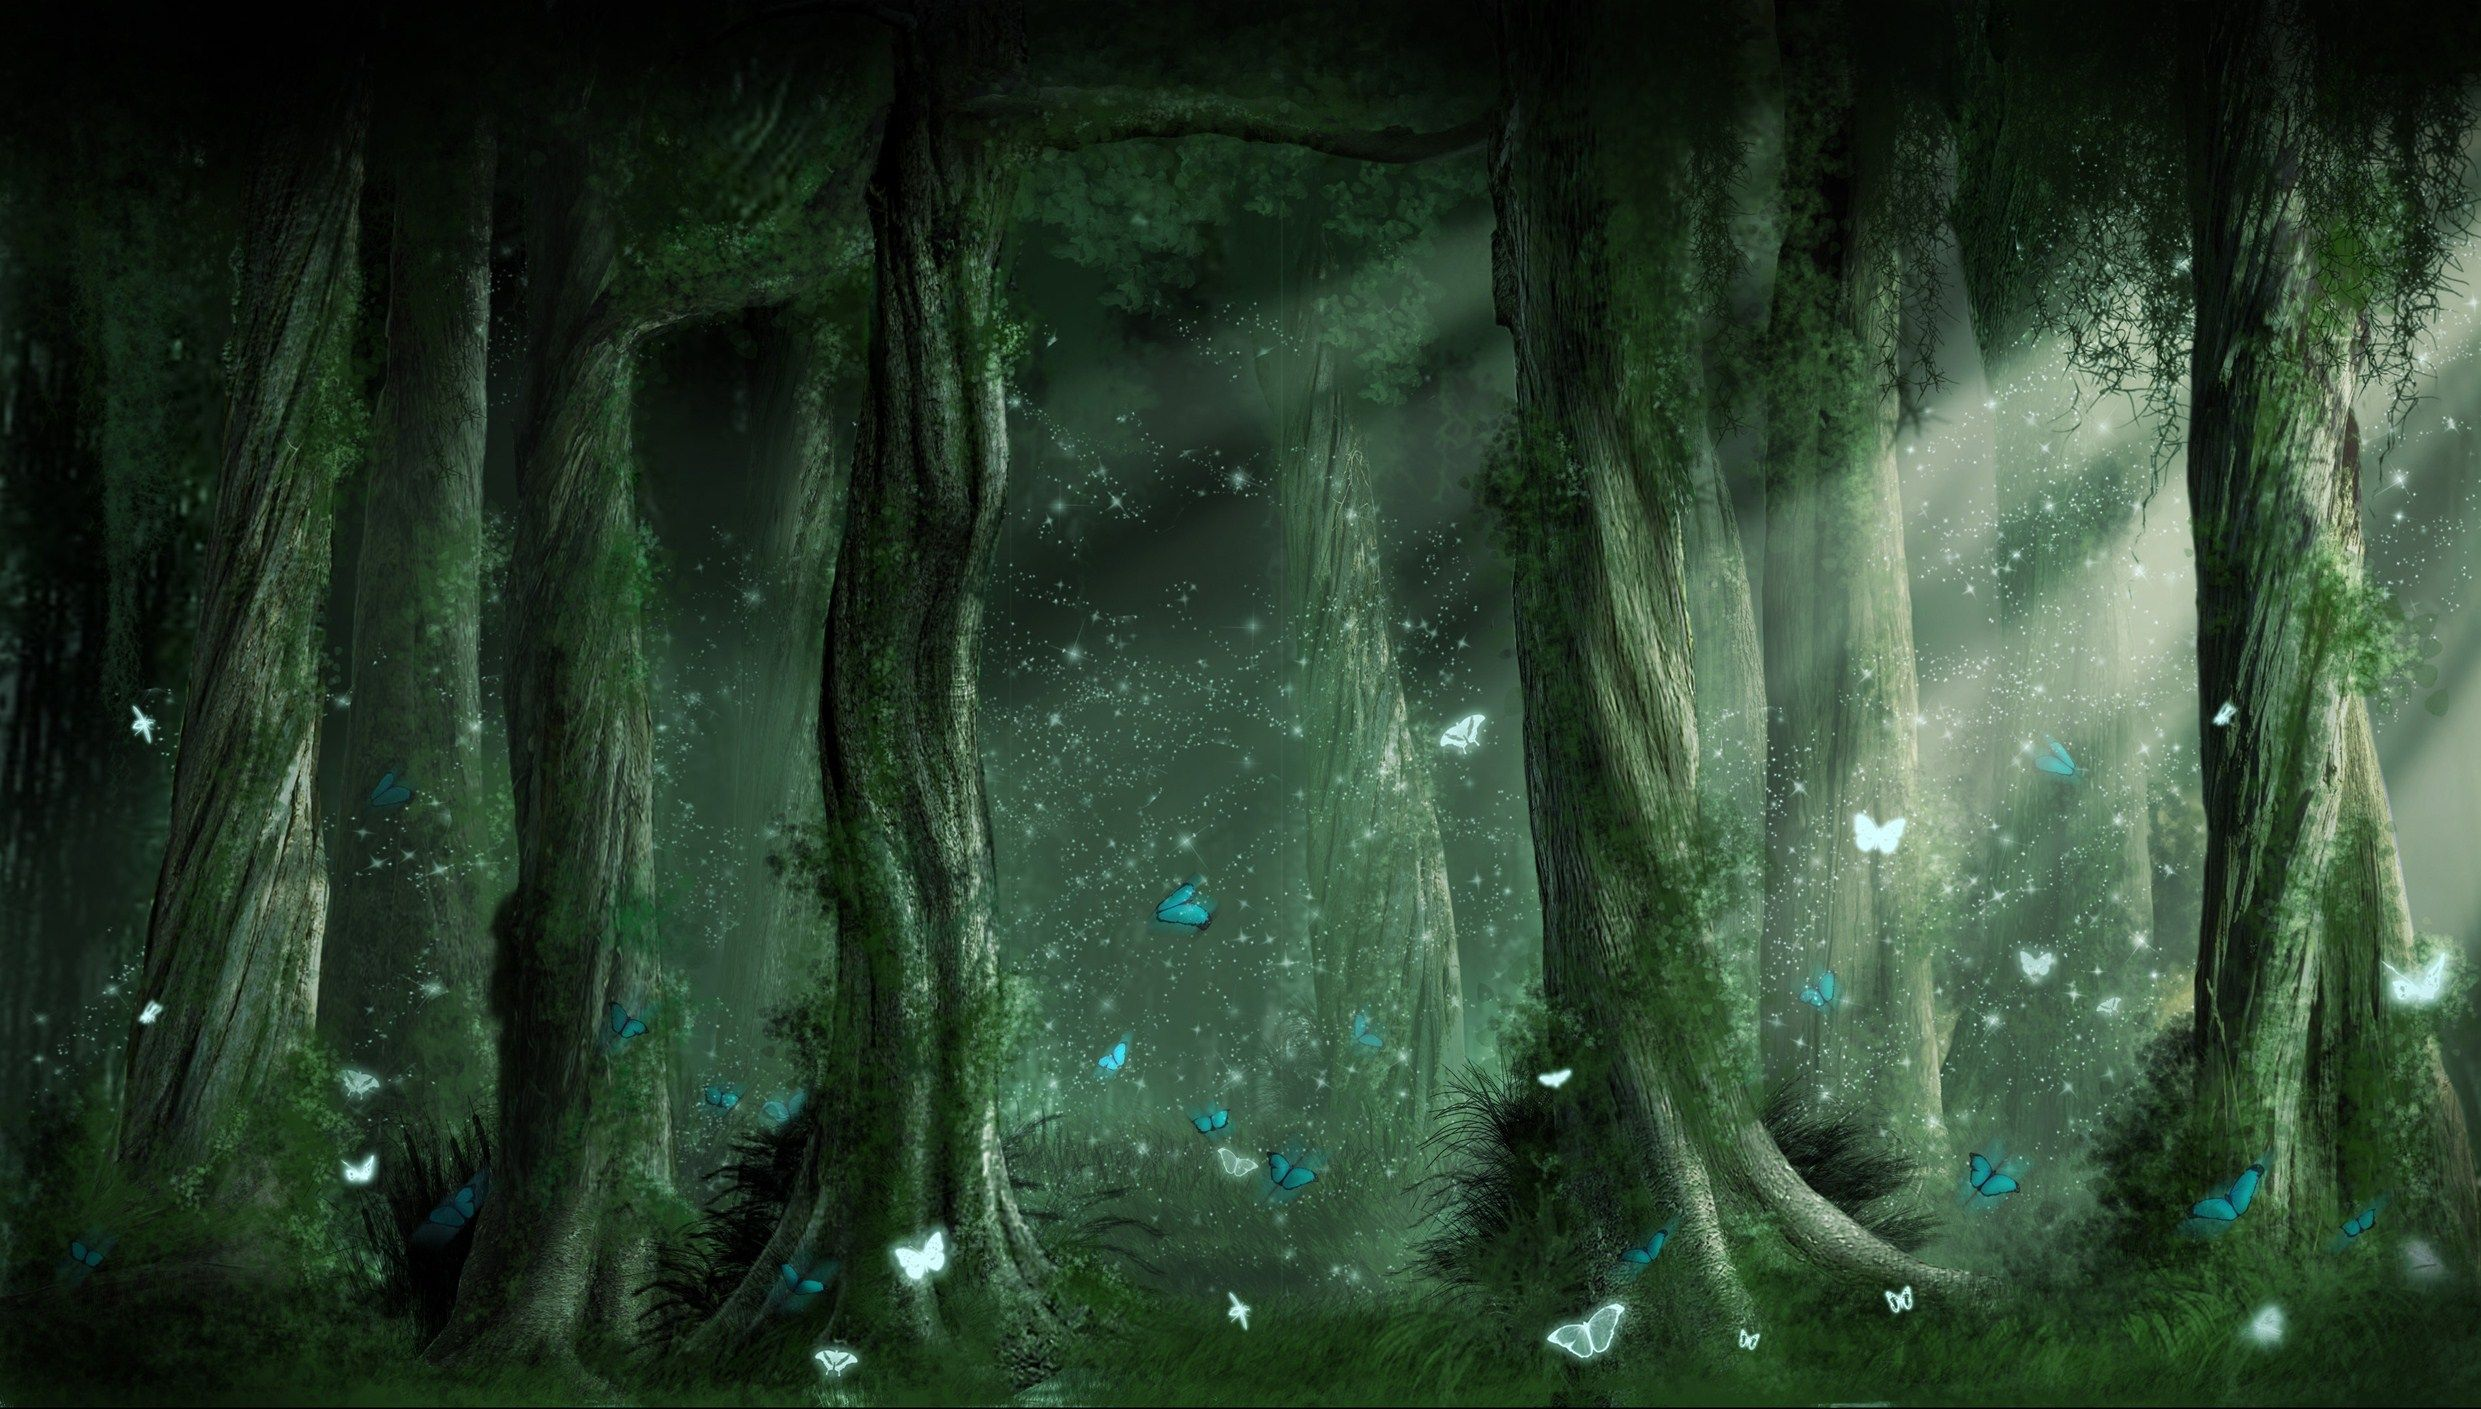 Wallpaper clipart forest With backgrounds on category forest